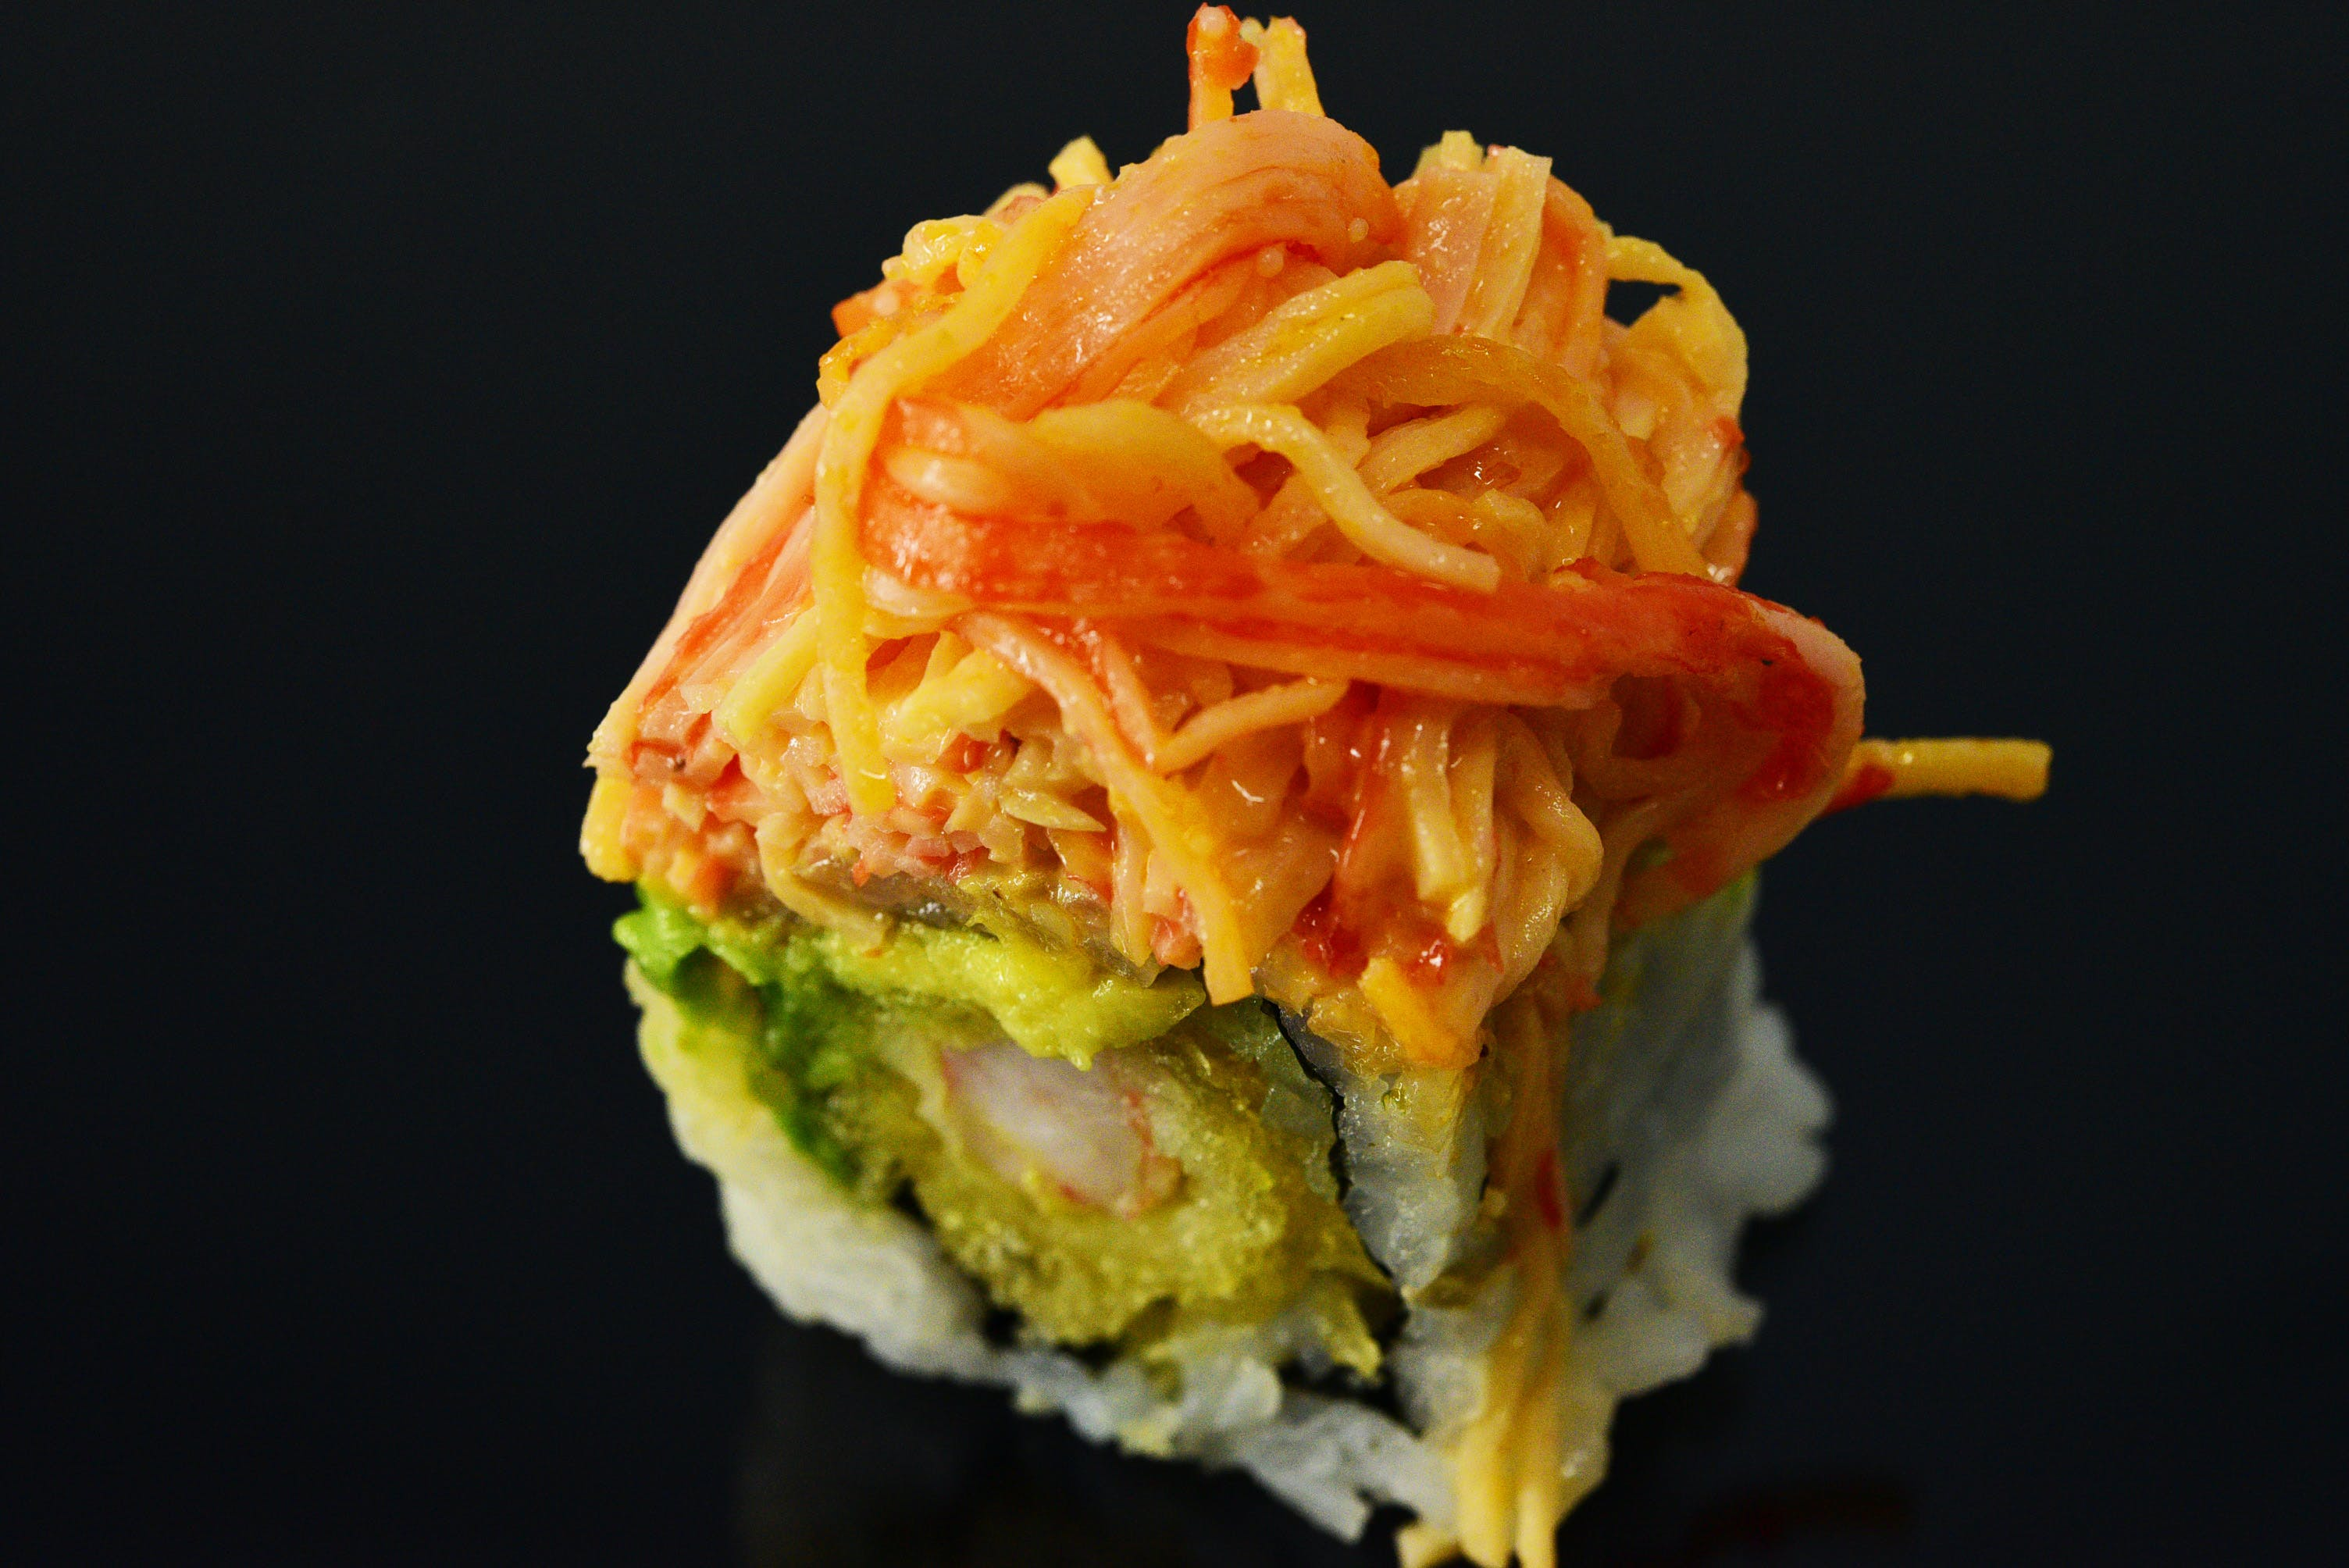 Firecracker Roll from Fin Sushi in Madison, WI